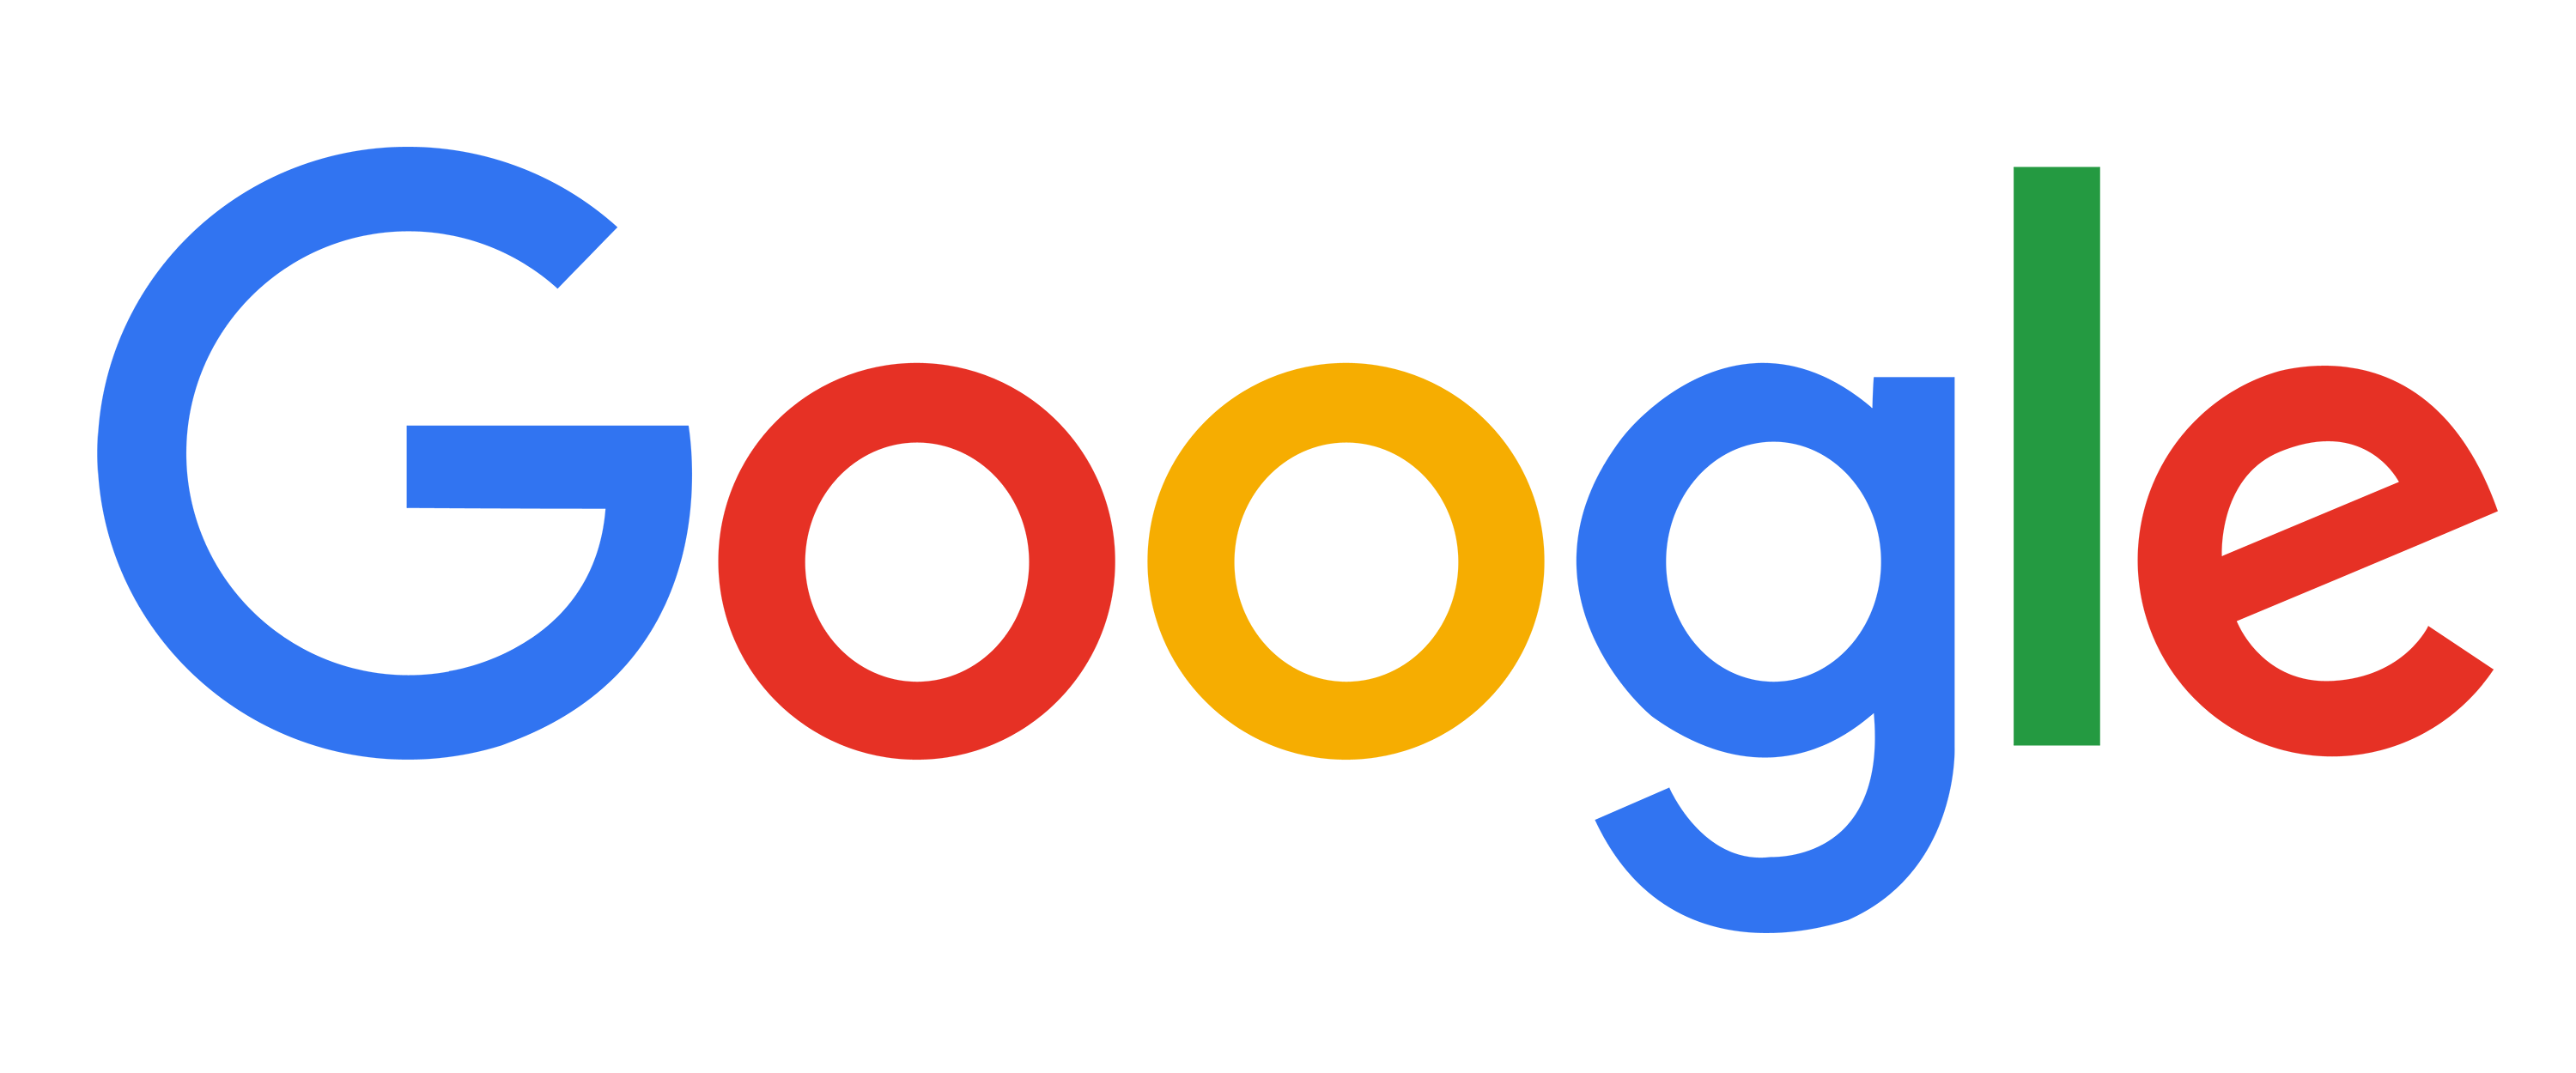 www.videolan.org/images/partners/google-2015.png